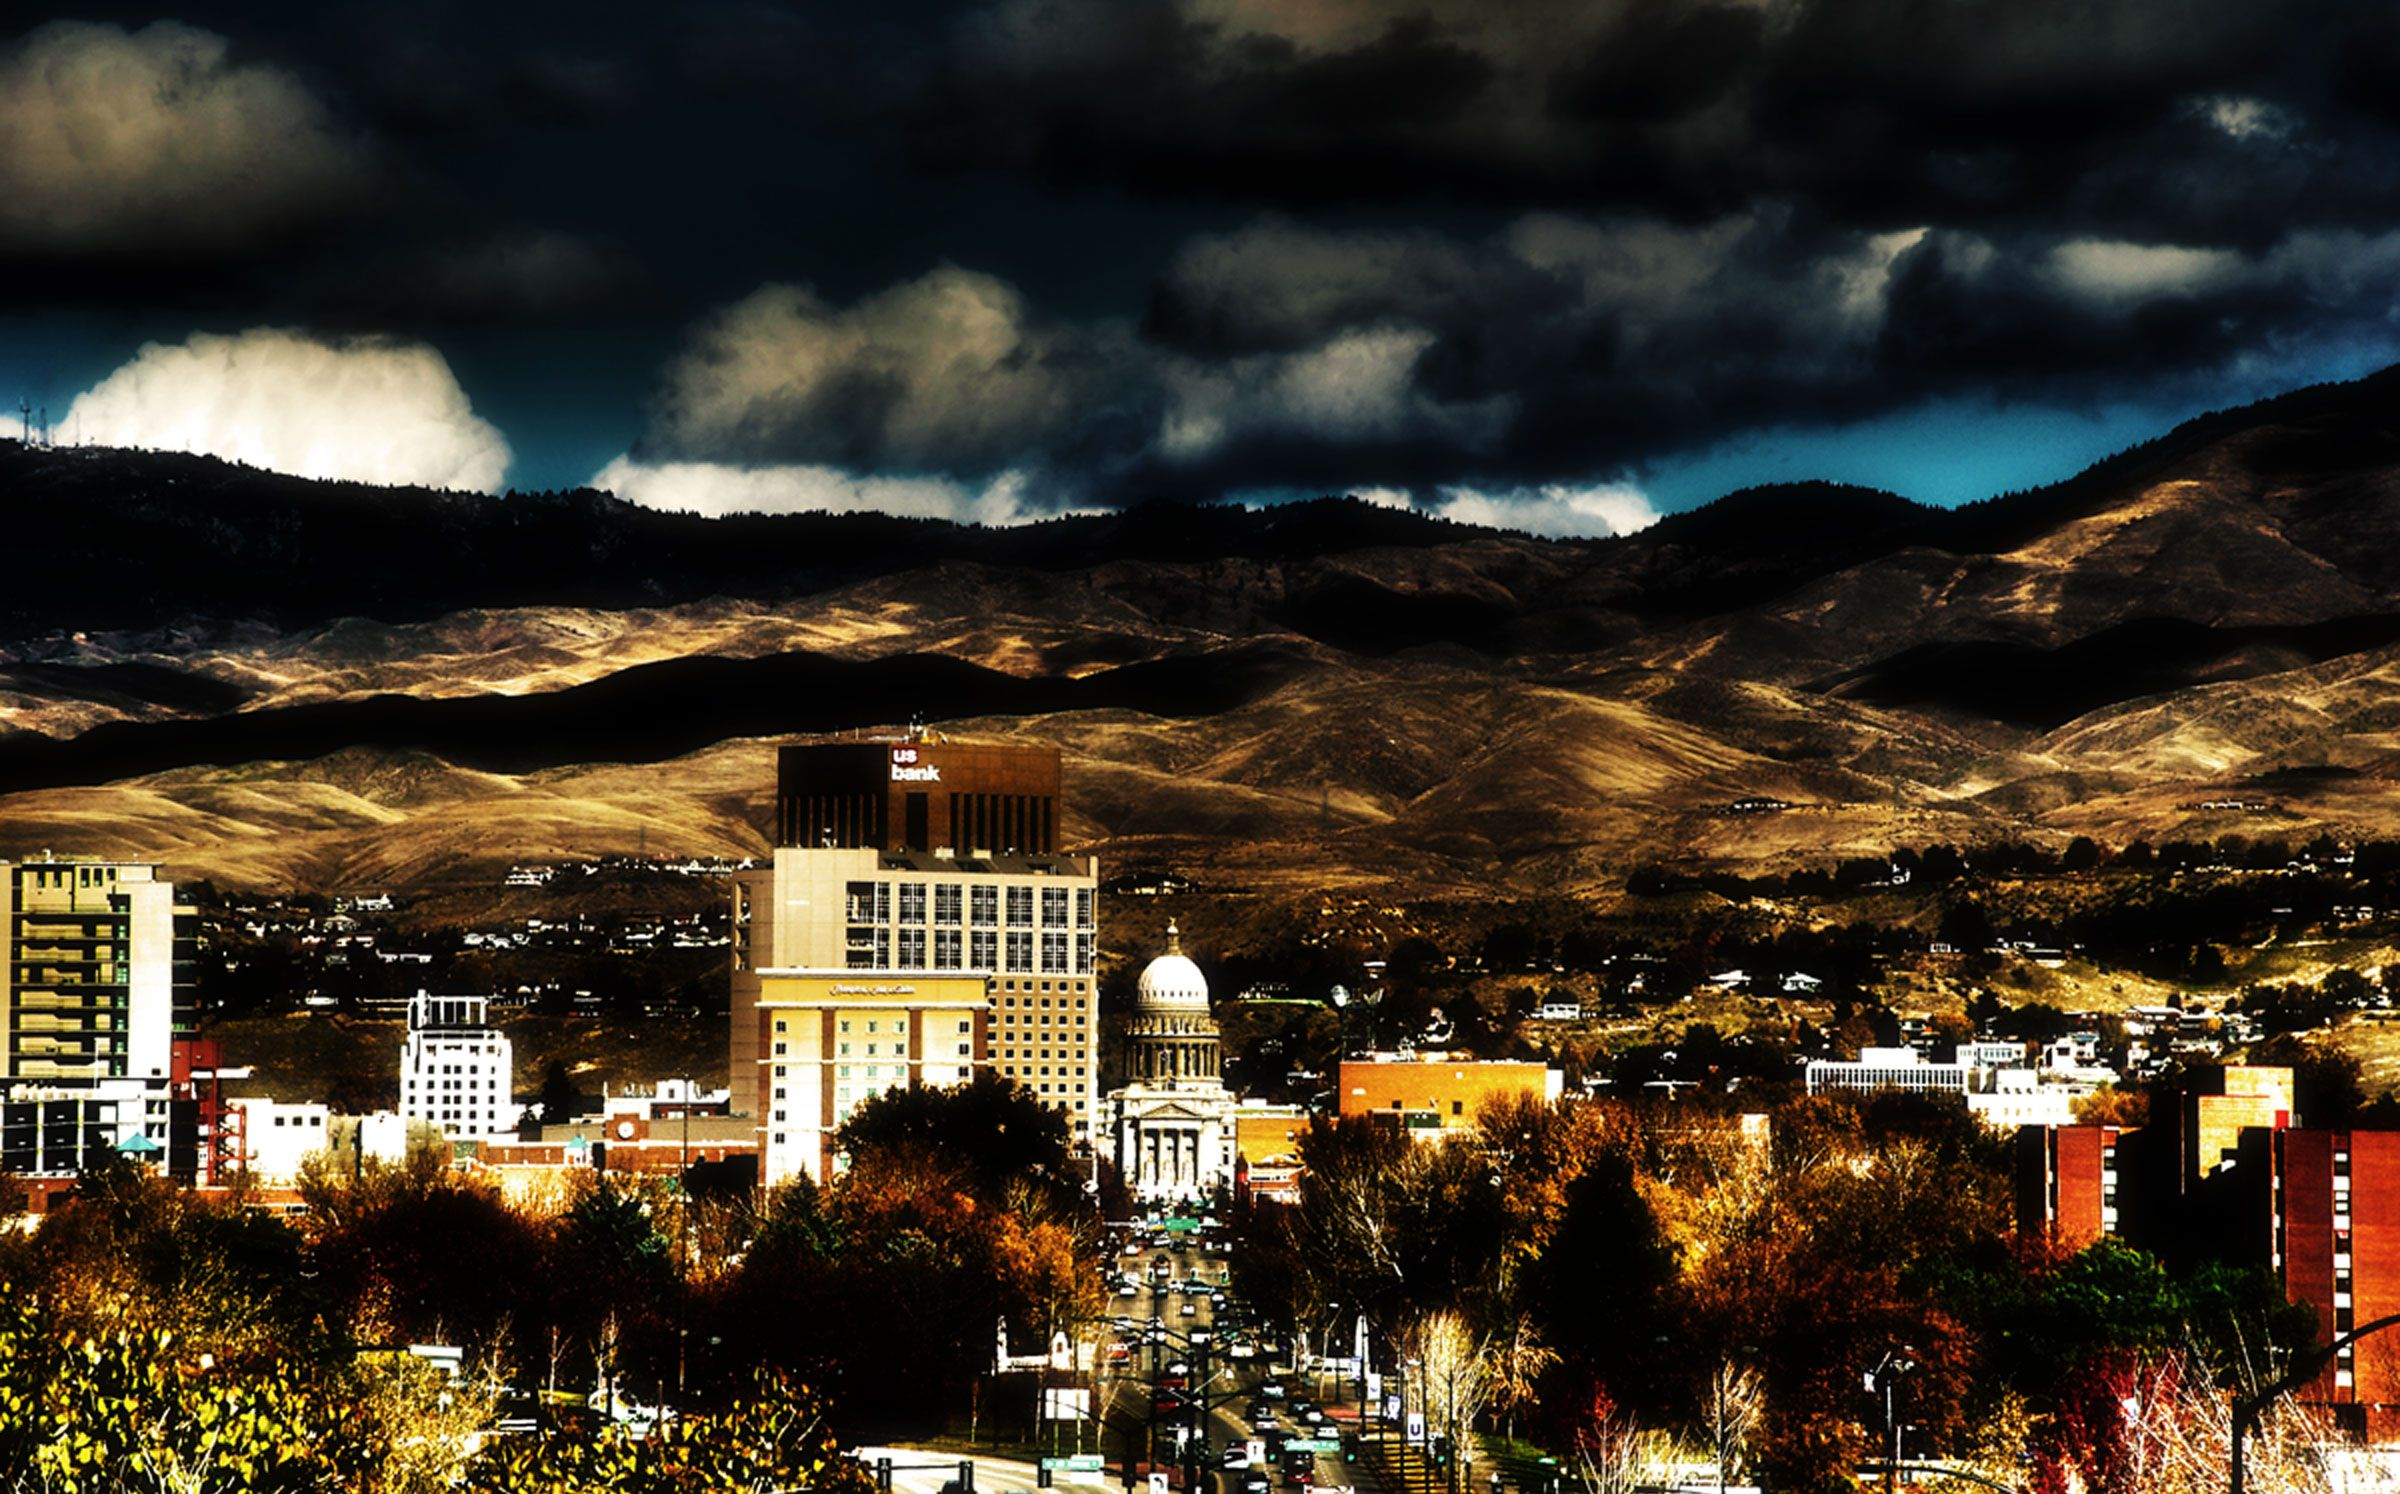 Downtown Boise, Idaho in winter | Boise, Idaho | Pinterest | Idaho ...